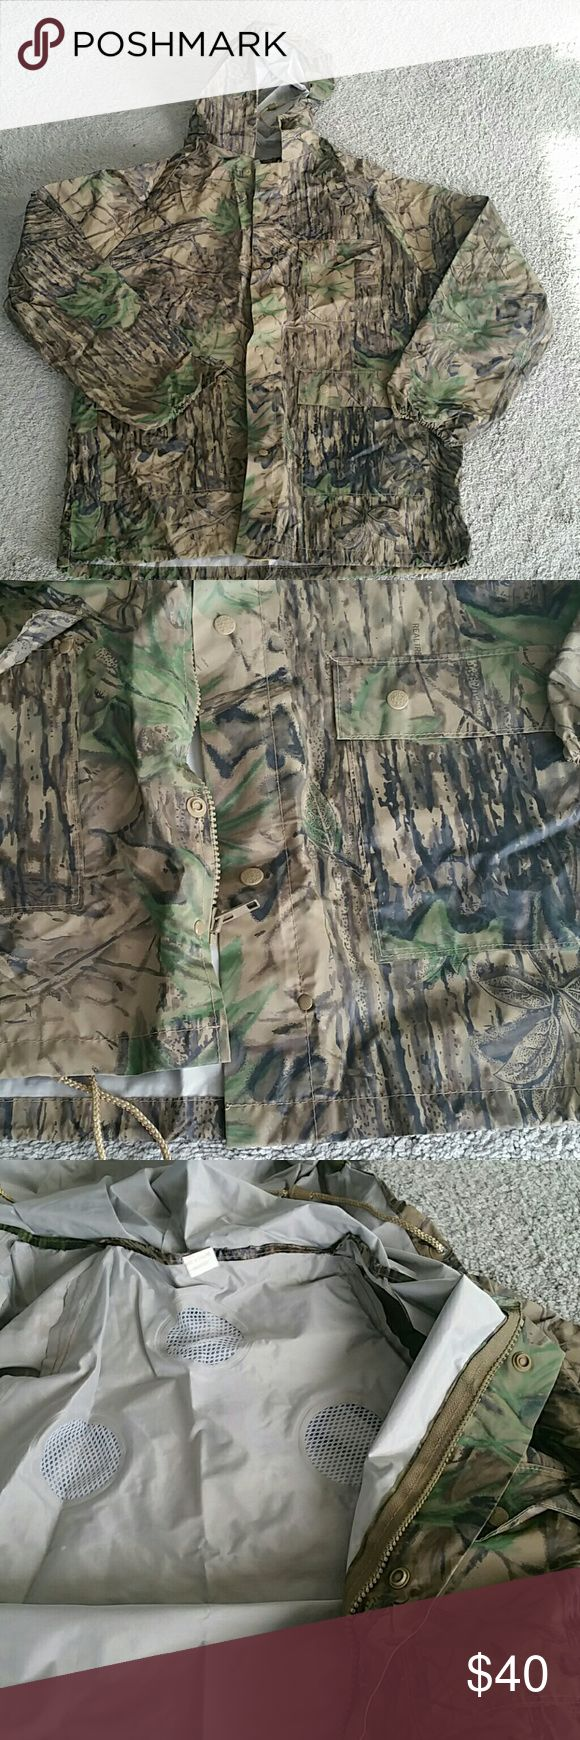 Waterproof,  Real Tree Camouflage hooded jacket Vinyl with vents,  3-pockets, zipper and snaps,  like new! Dry Wear Jackets & Coats Military & Field